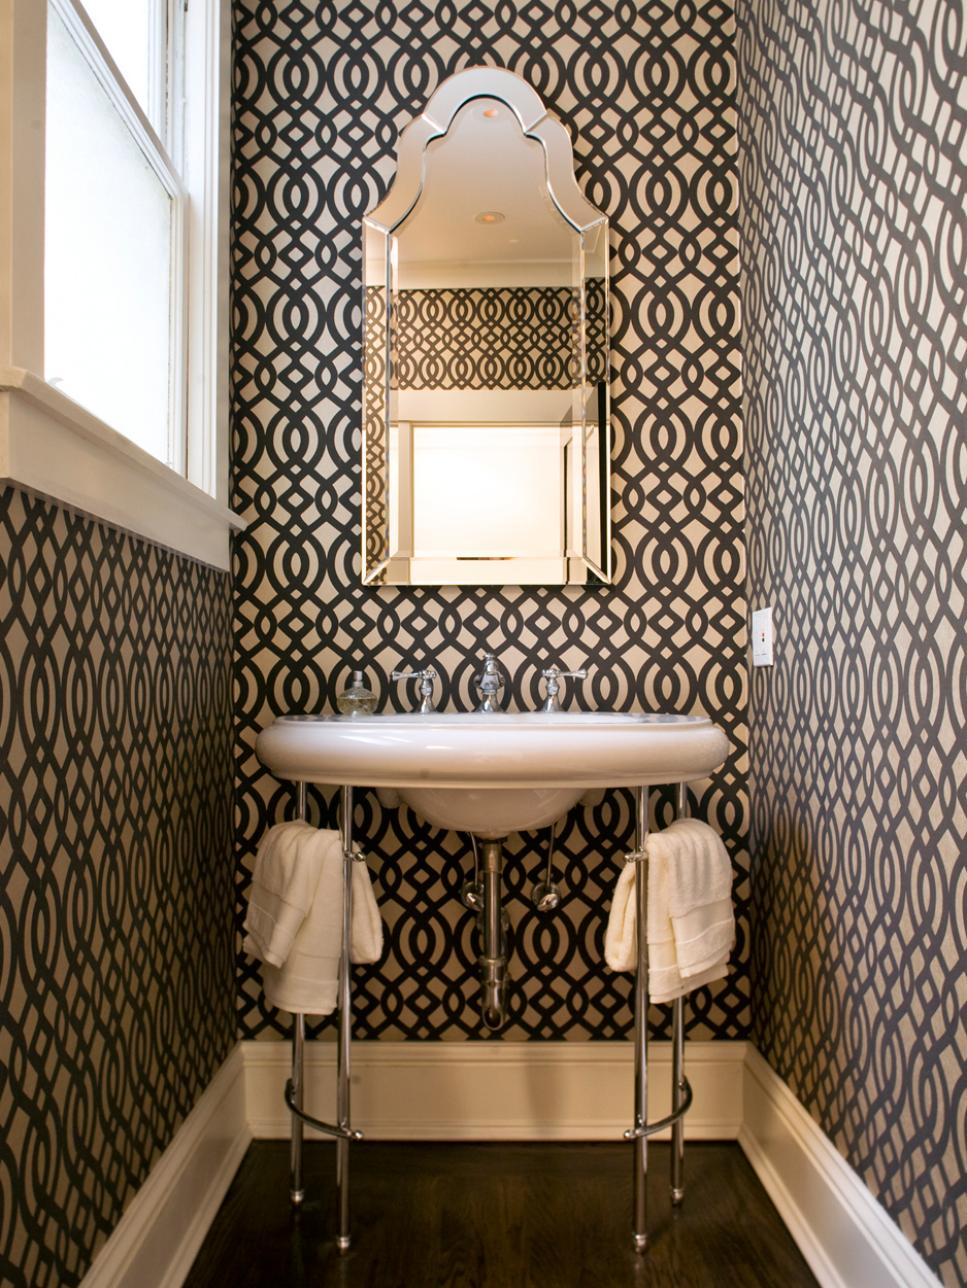 Design Tiny Bathroom Ideas 20 small bathroom design ideas hgtv